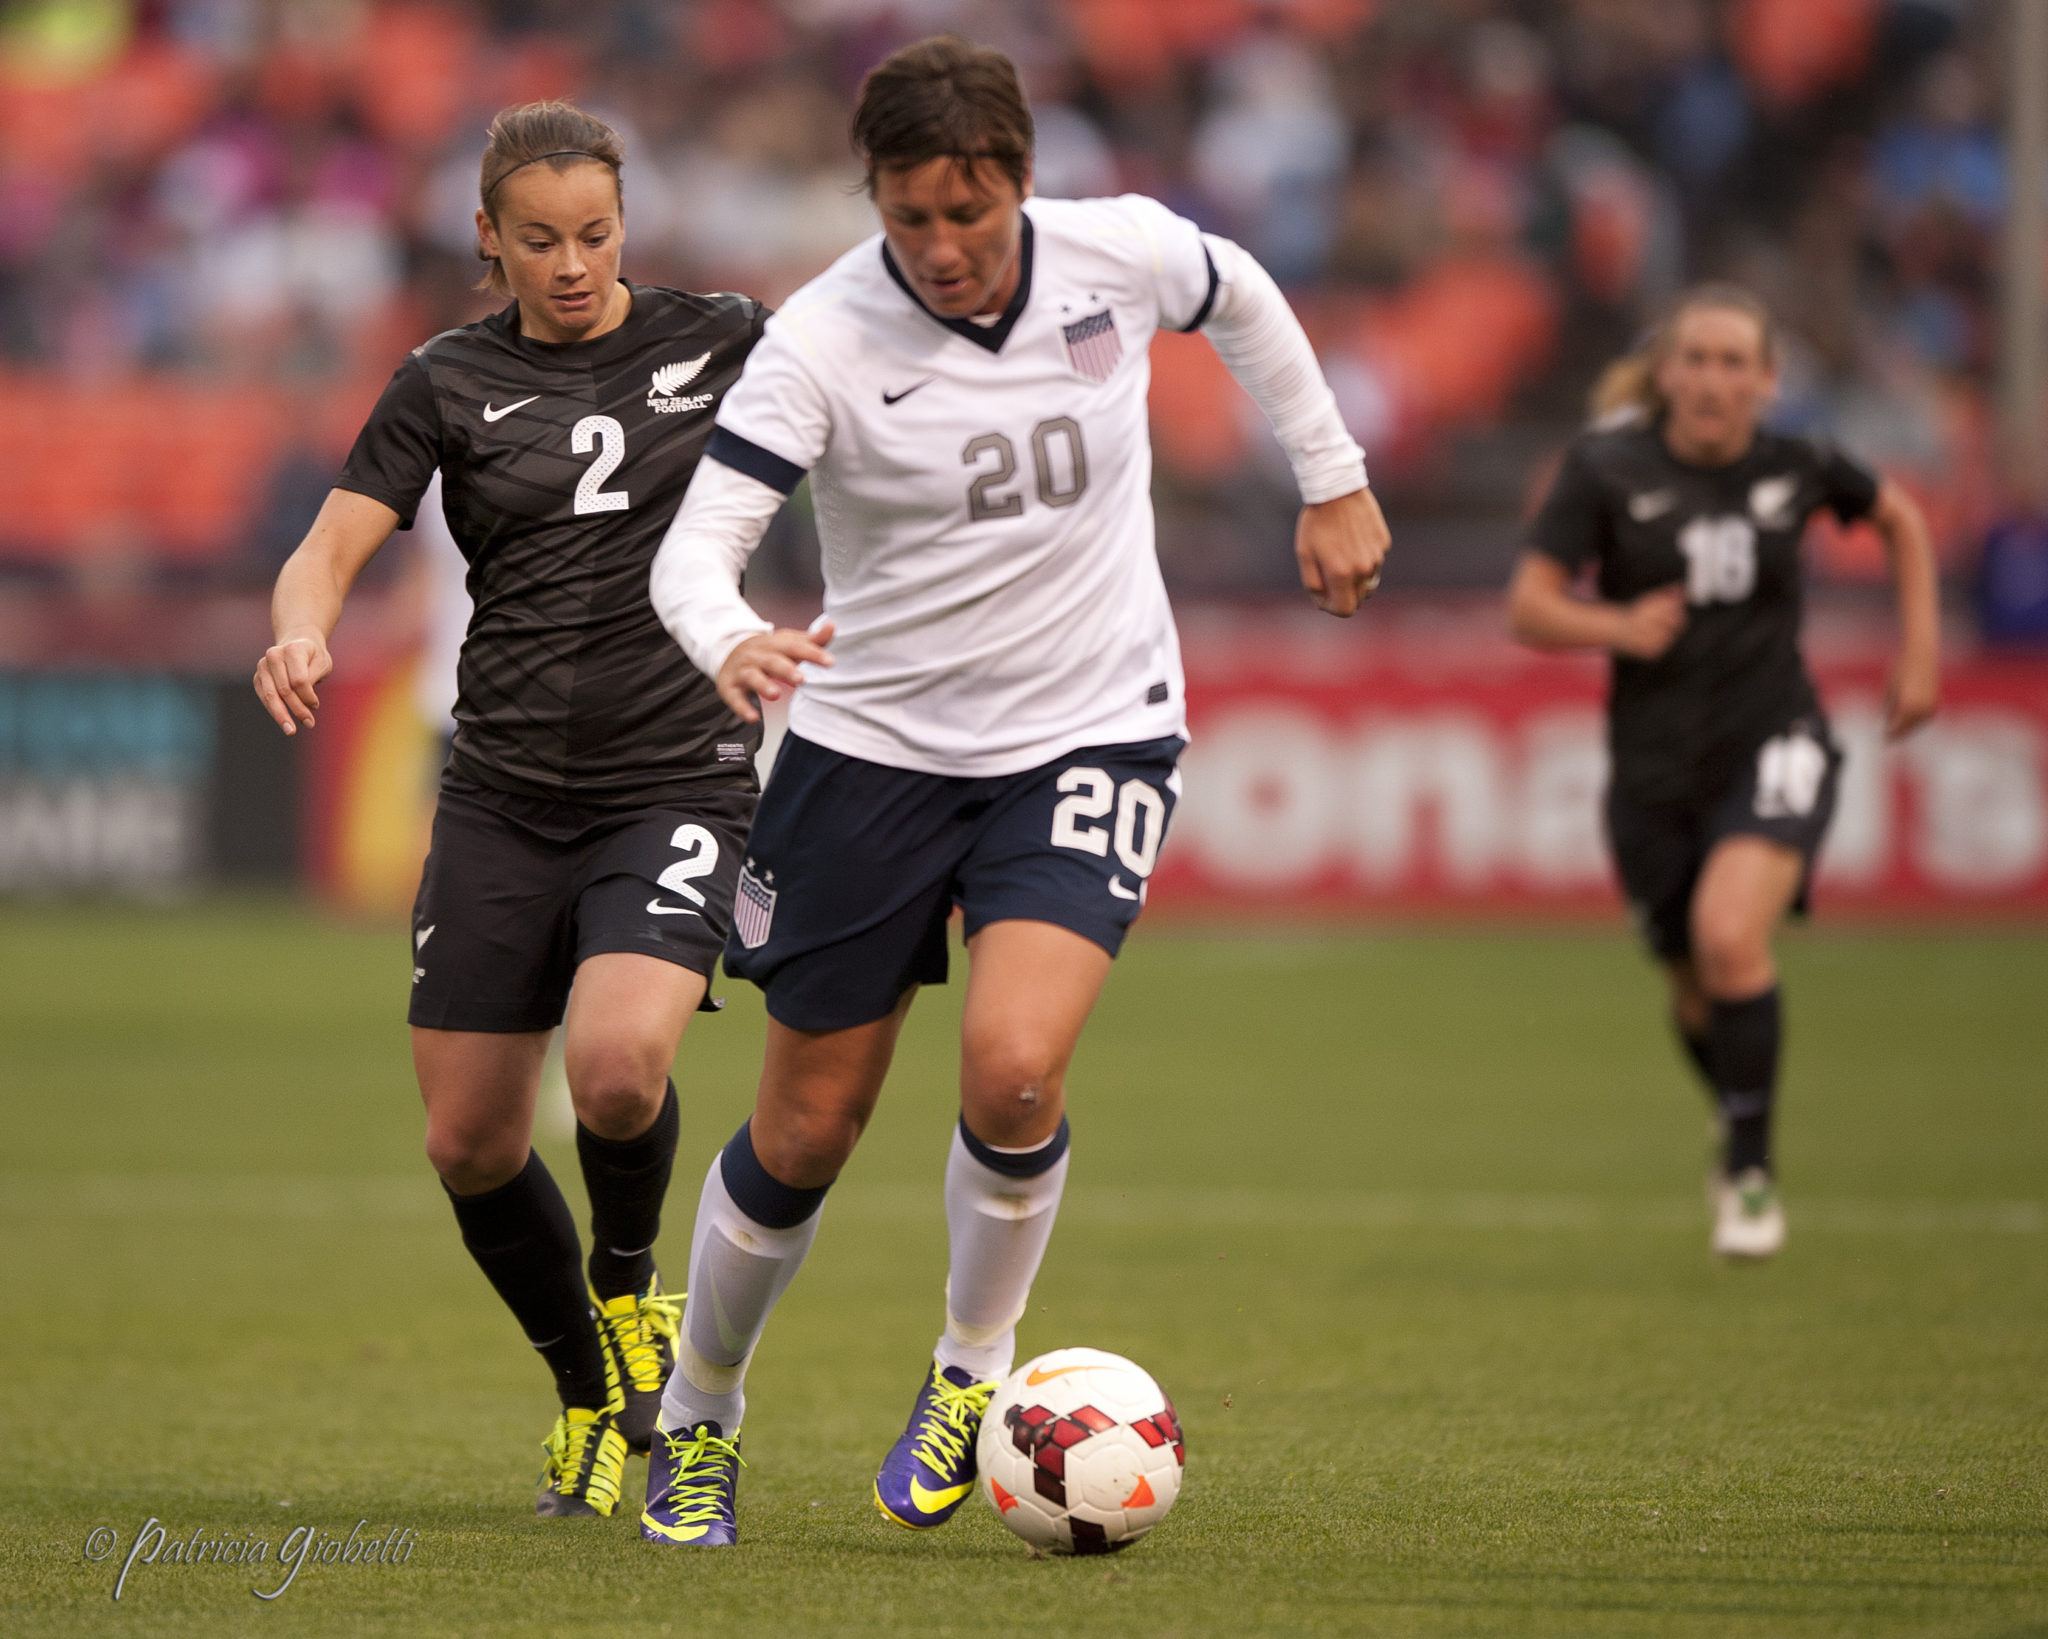 Abby Wambach won a sixth U.S. Soccer female athlete of the year award. (Photo Copyright Patricia Giobetti)